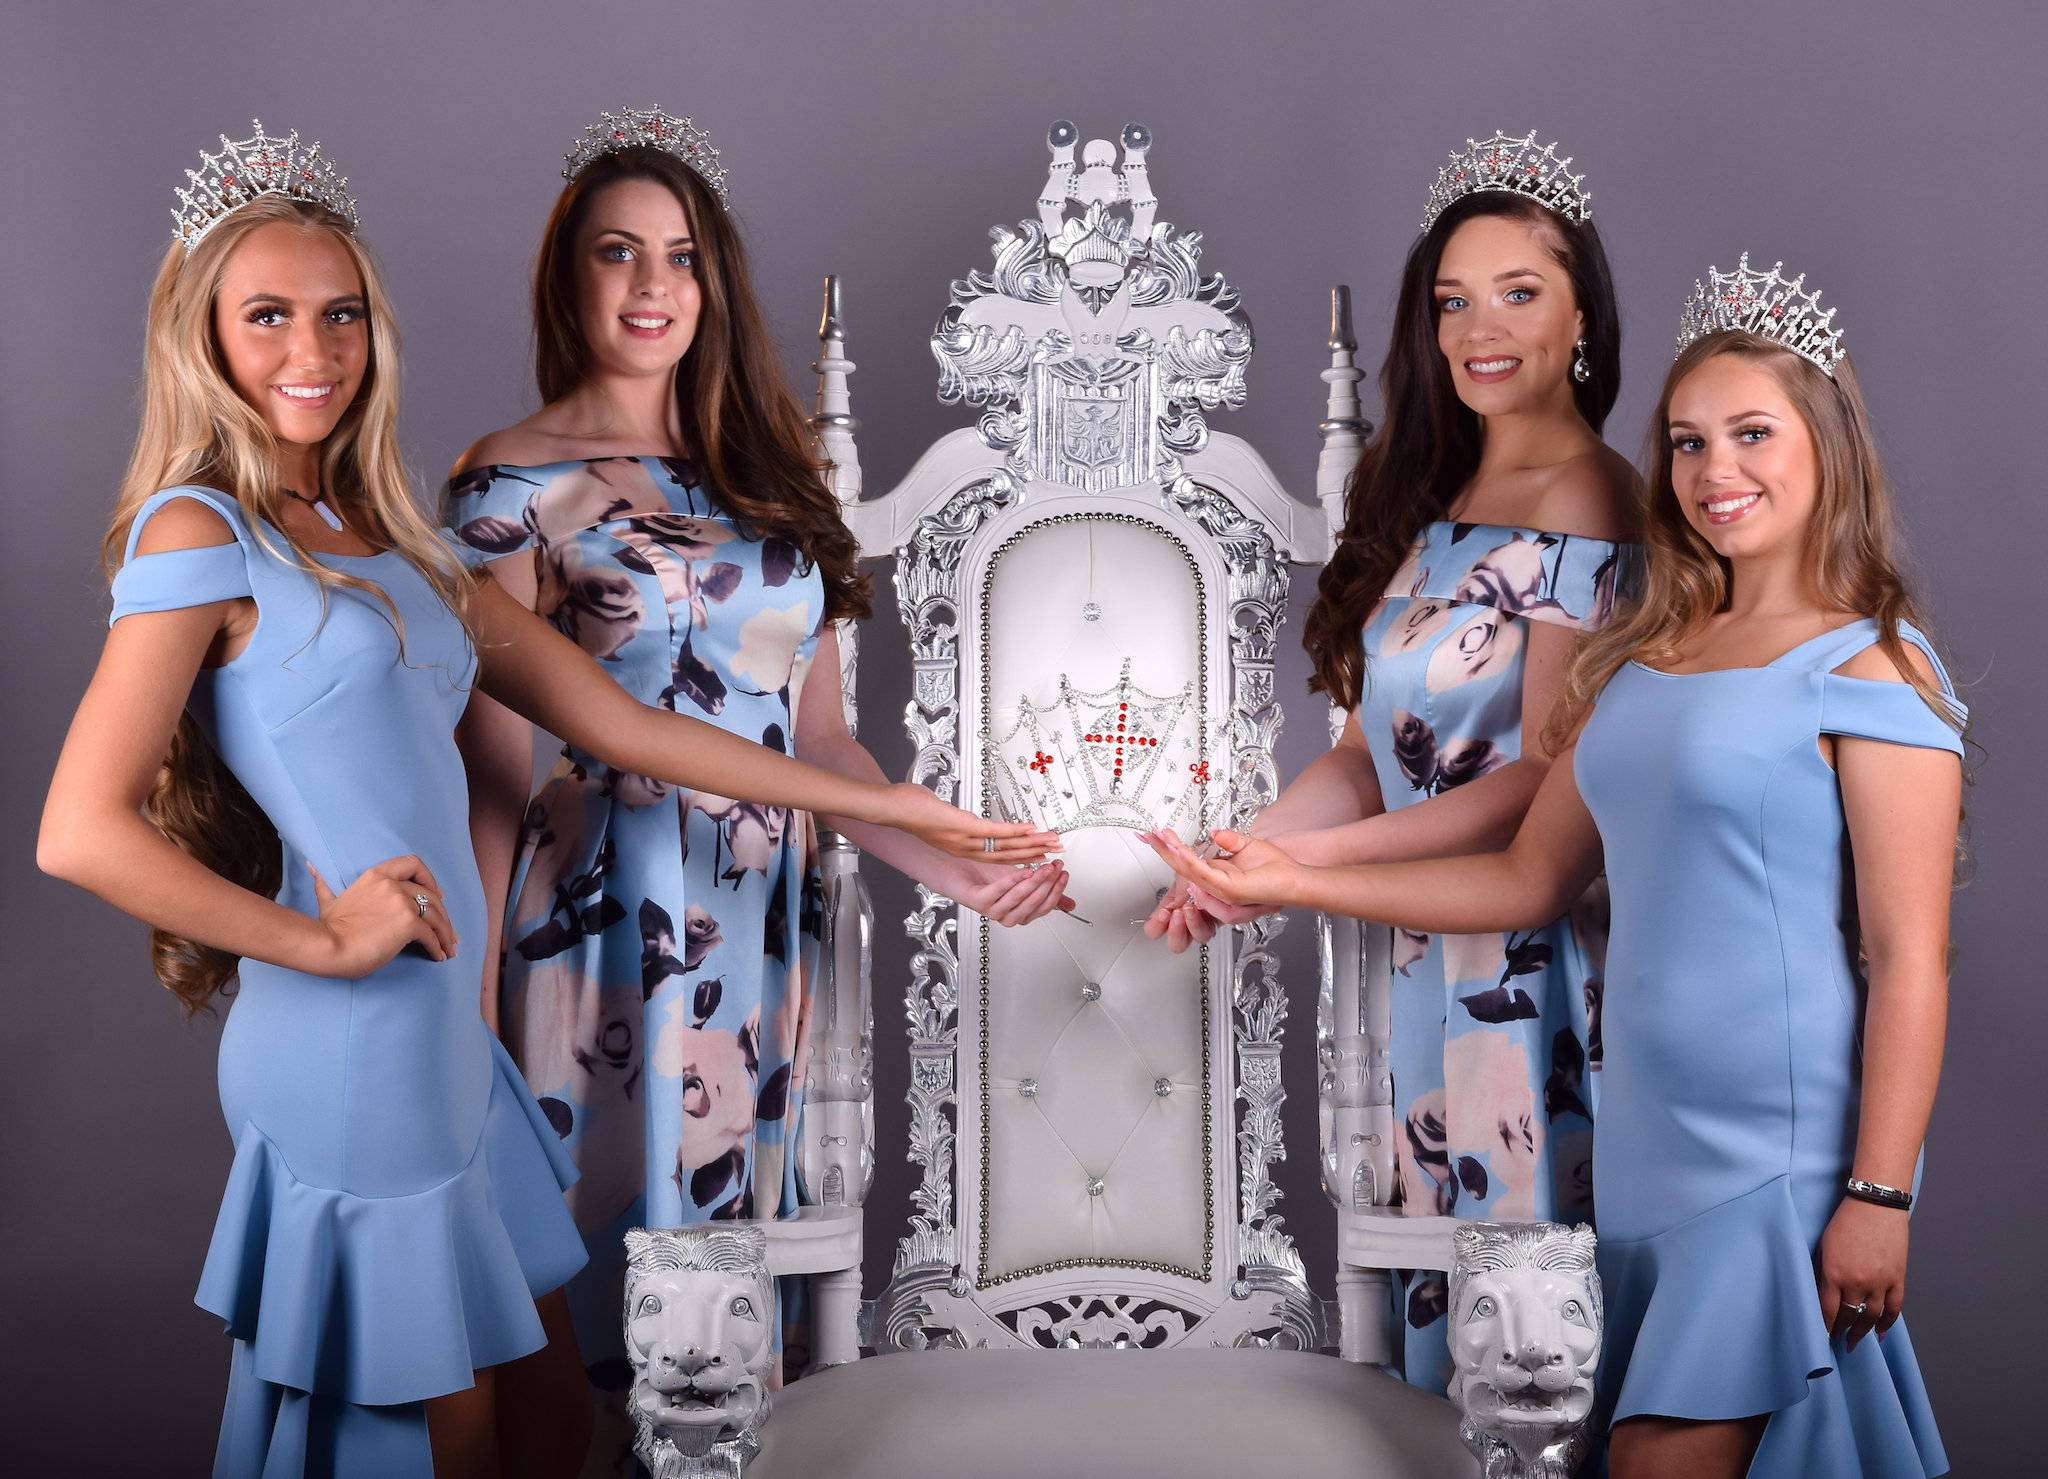 Miss England Contestants trying on their outfits